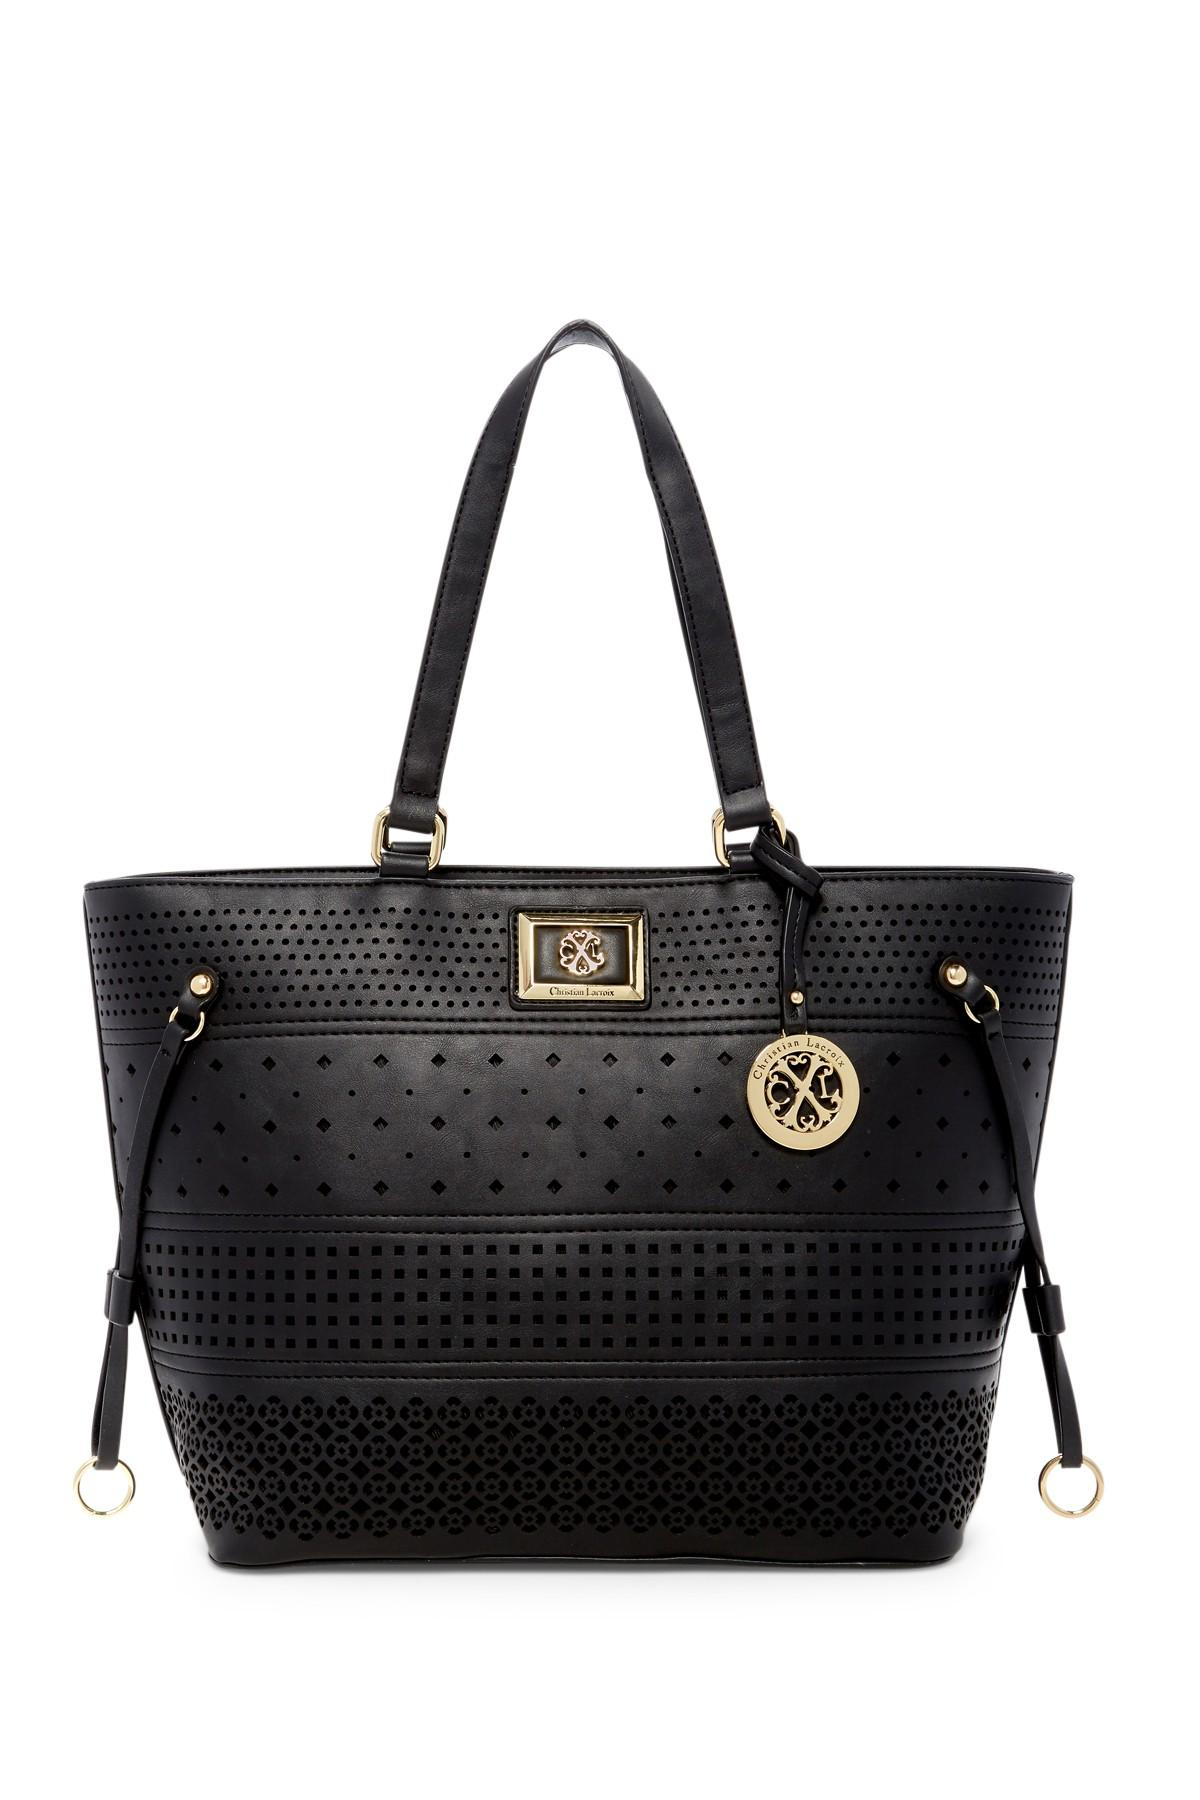 Cxl By Christian Lacroix Renee Perforated Tote In Black Lyst